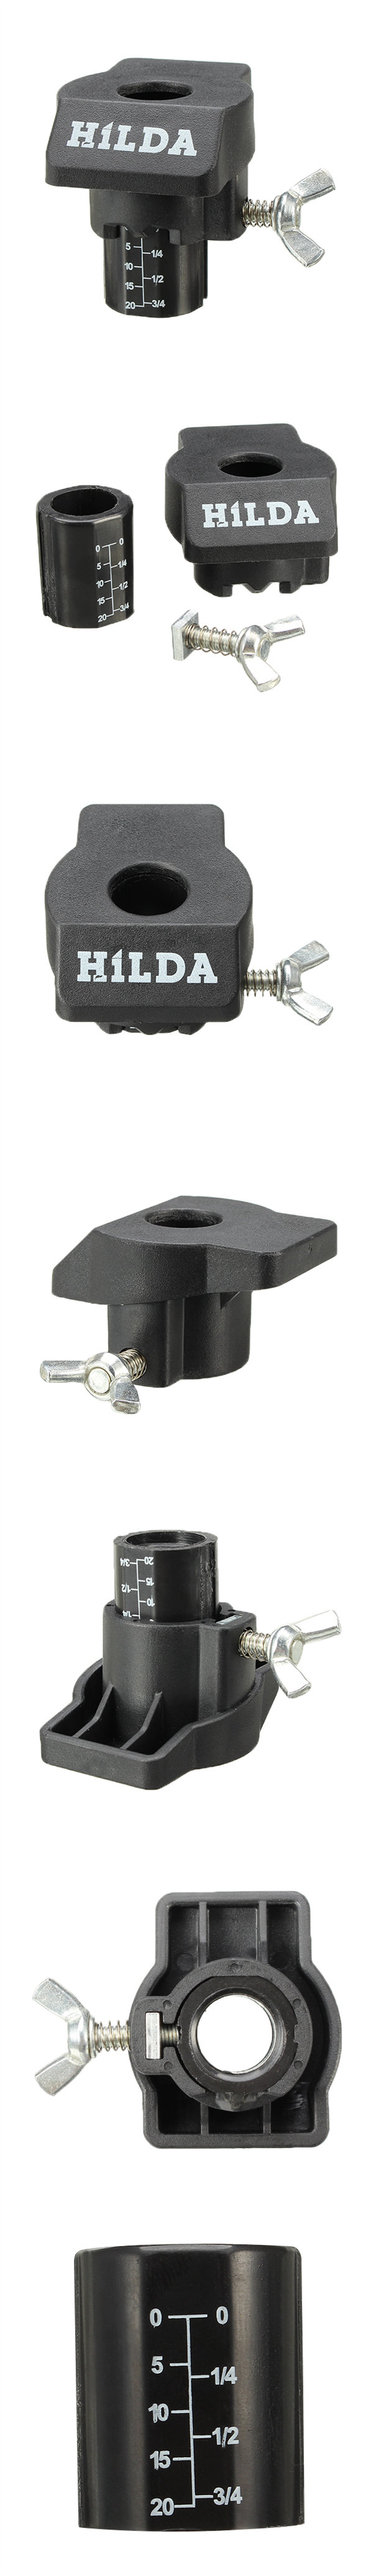 HILDA Sanding and Grinding Guide Attachment Locator Positioner for Rotary Tool Drill Adapter